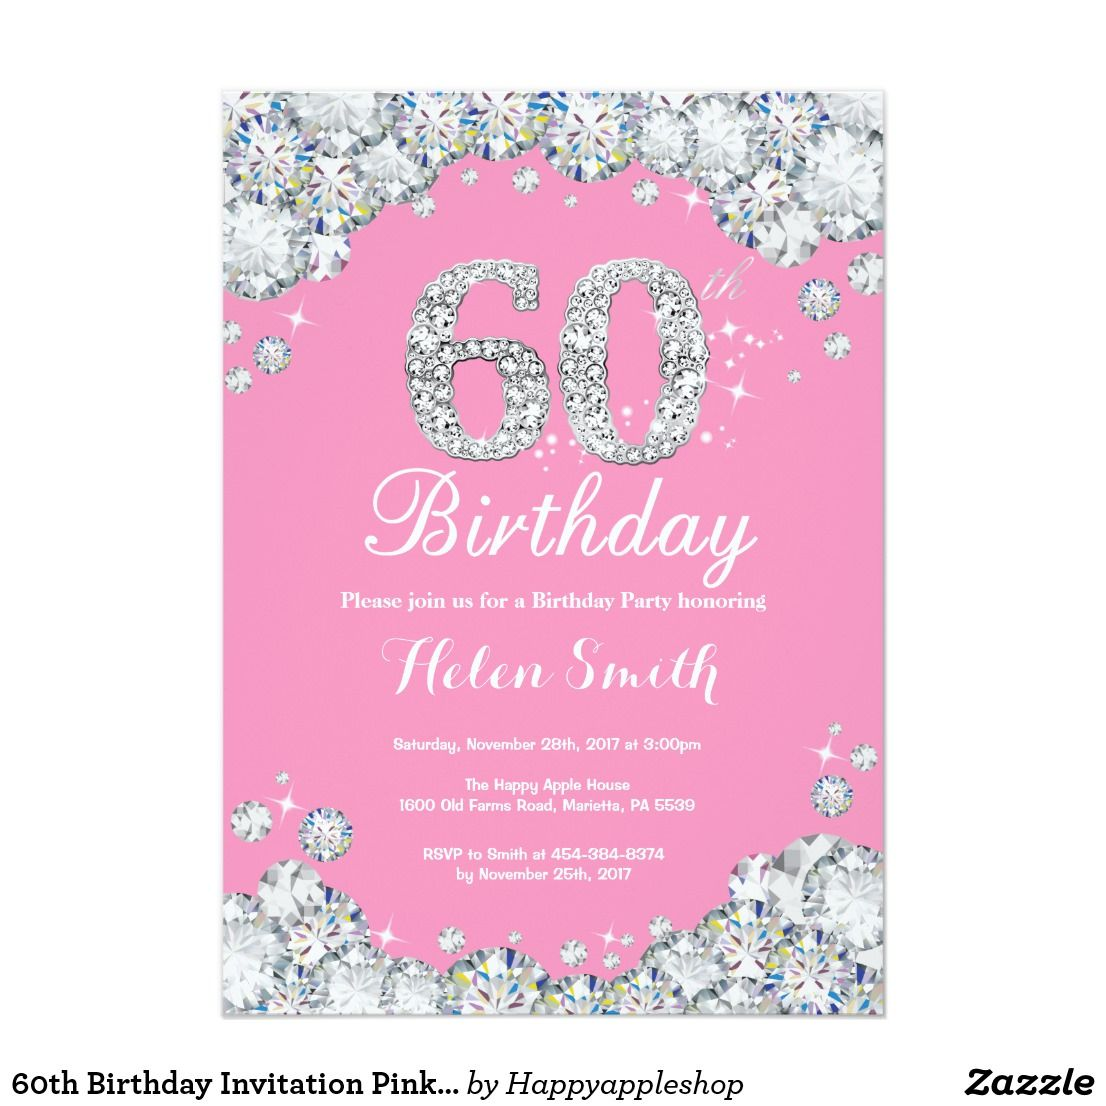 60th Birthday Invitation Pink and Silver Diamond | Zazzle.com | Pink  invitations, 60th birthday invitations, 80th birthday invitations